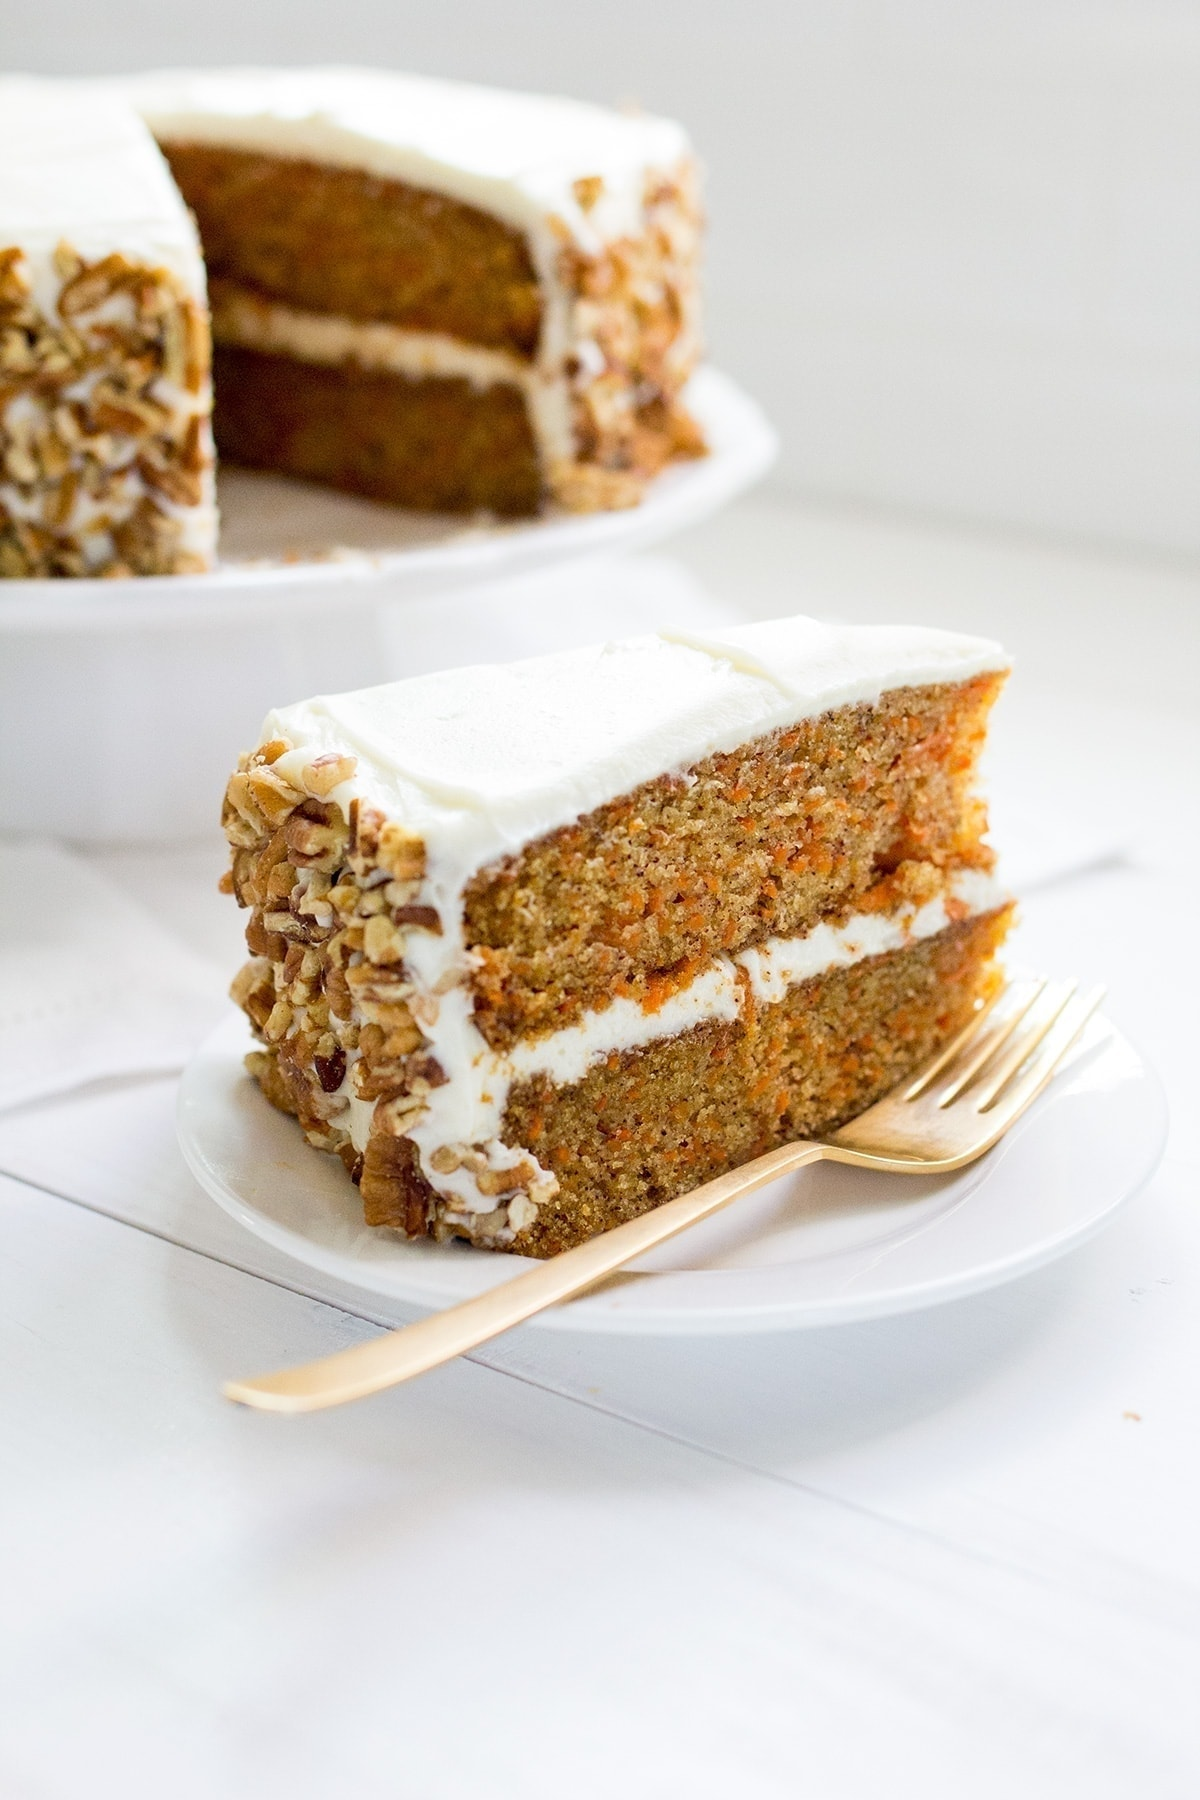 The Very Best Carrot Cake with Cream Cheese Frosting